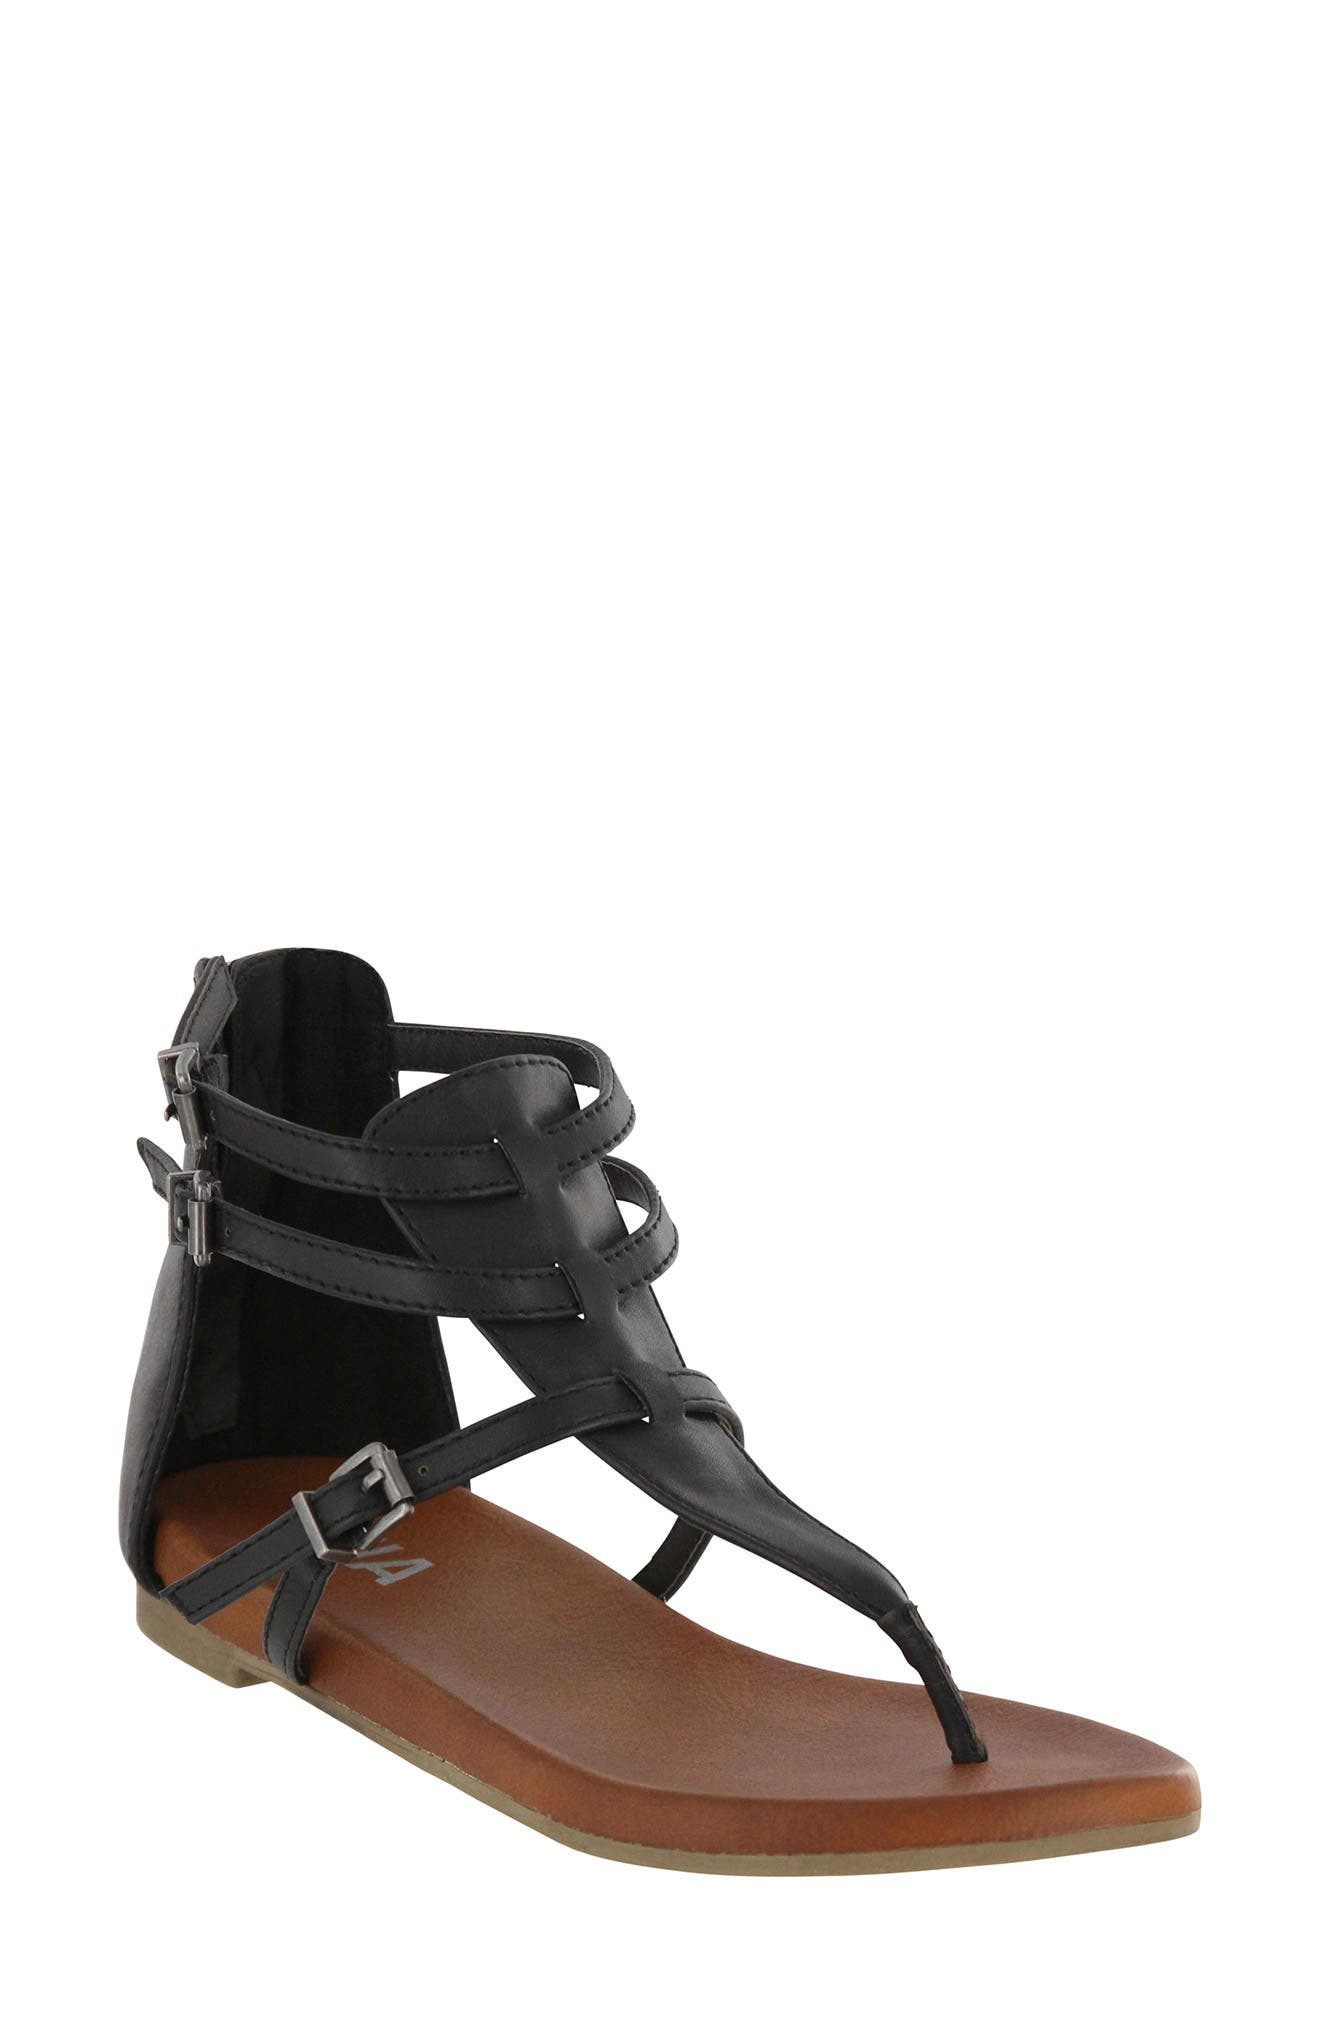 Dashiell V-Strap Sandal,                         Main,                         color, Black